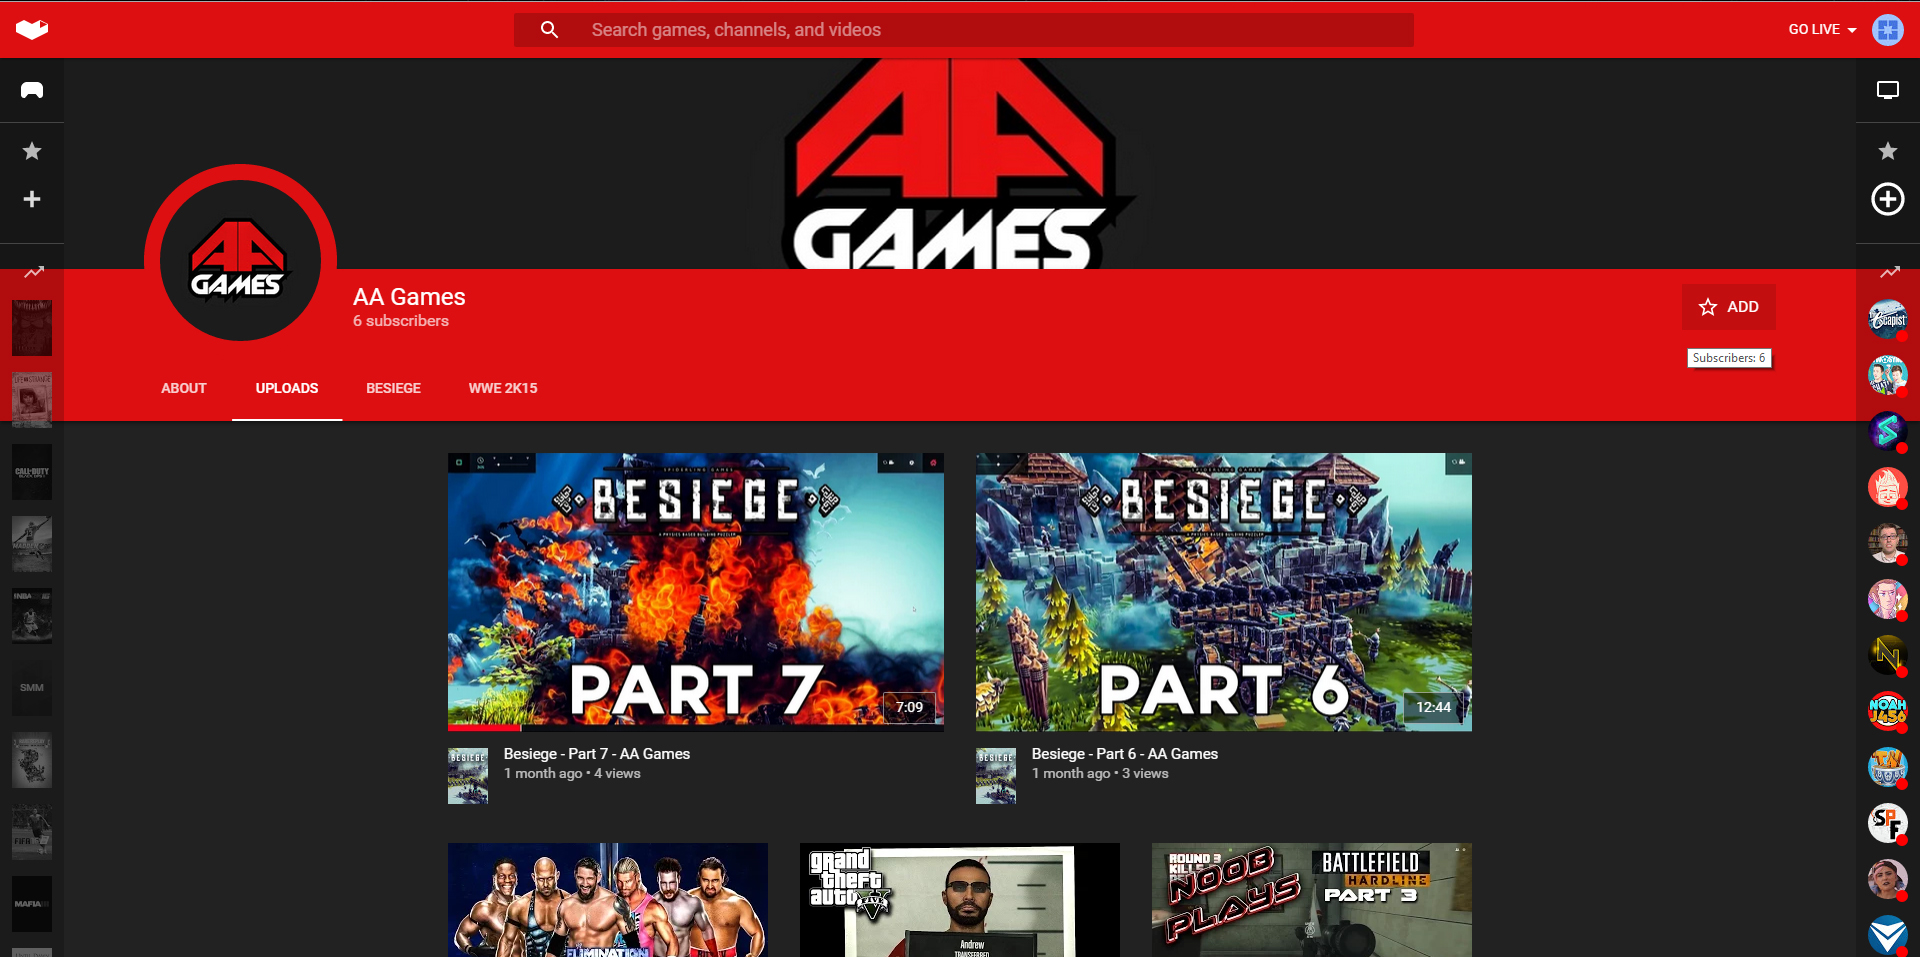 AA Games' channel on YouTube Gaming